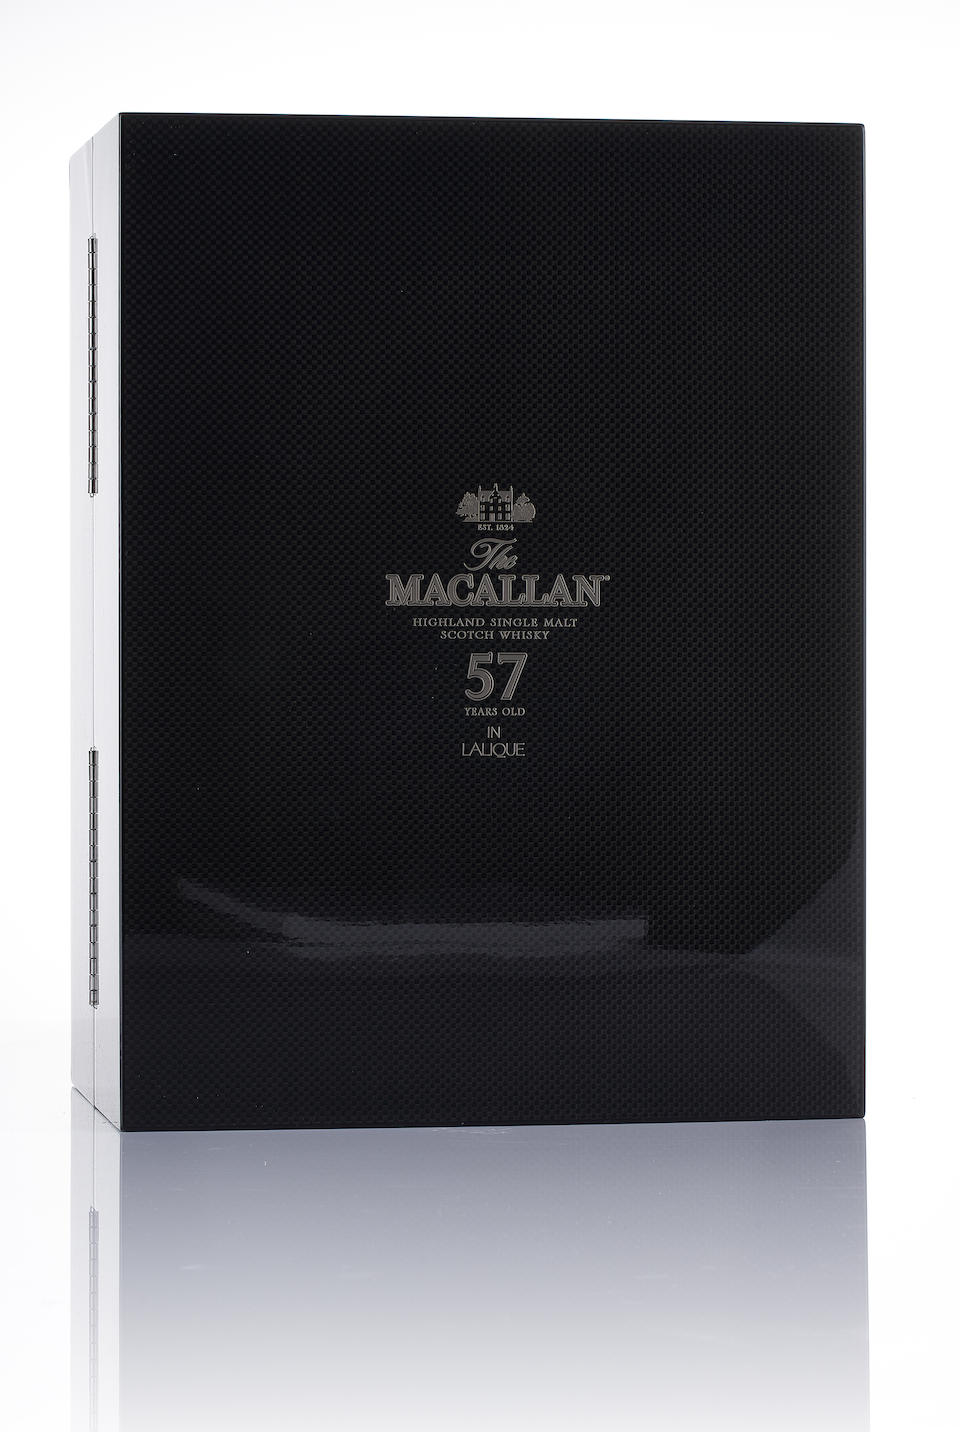 Macallan Lalique-57 year old